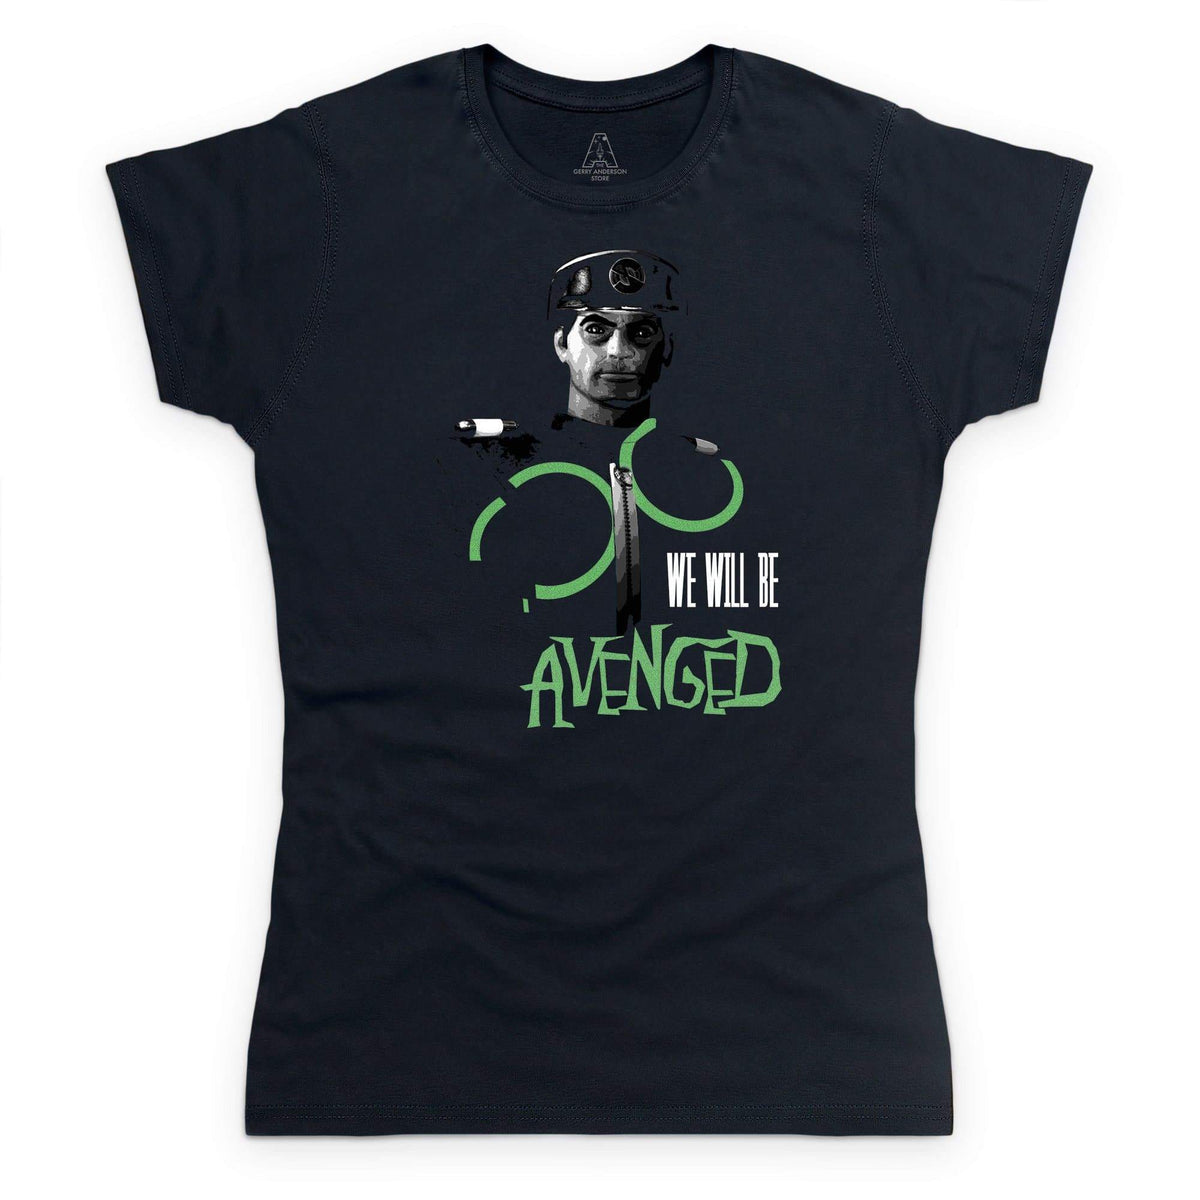 New Captain Scarlet Avenged Women's T-Shirt [Official & Exclusive] - The Gerry Anderson Store